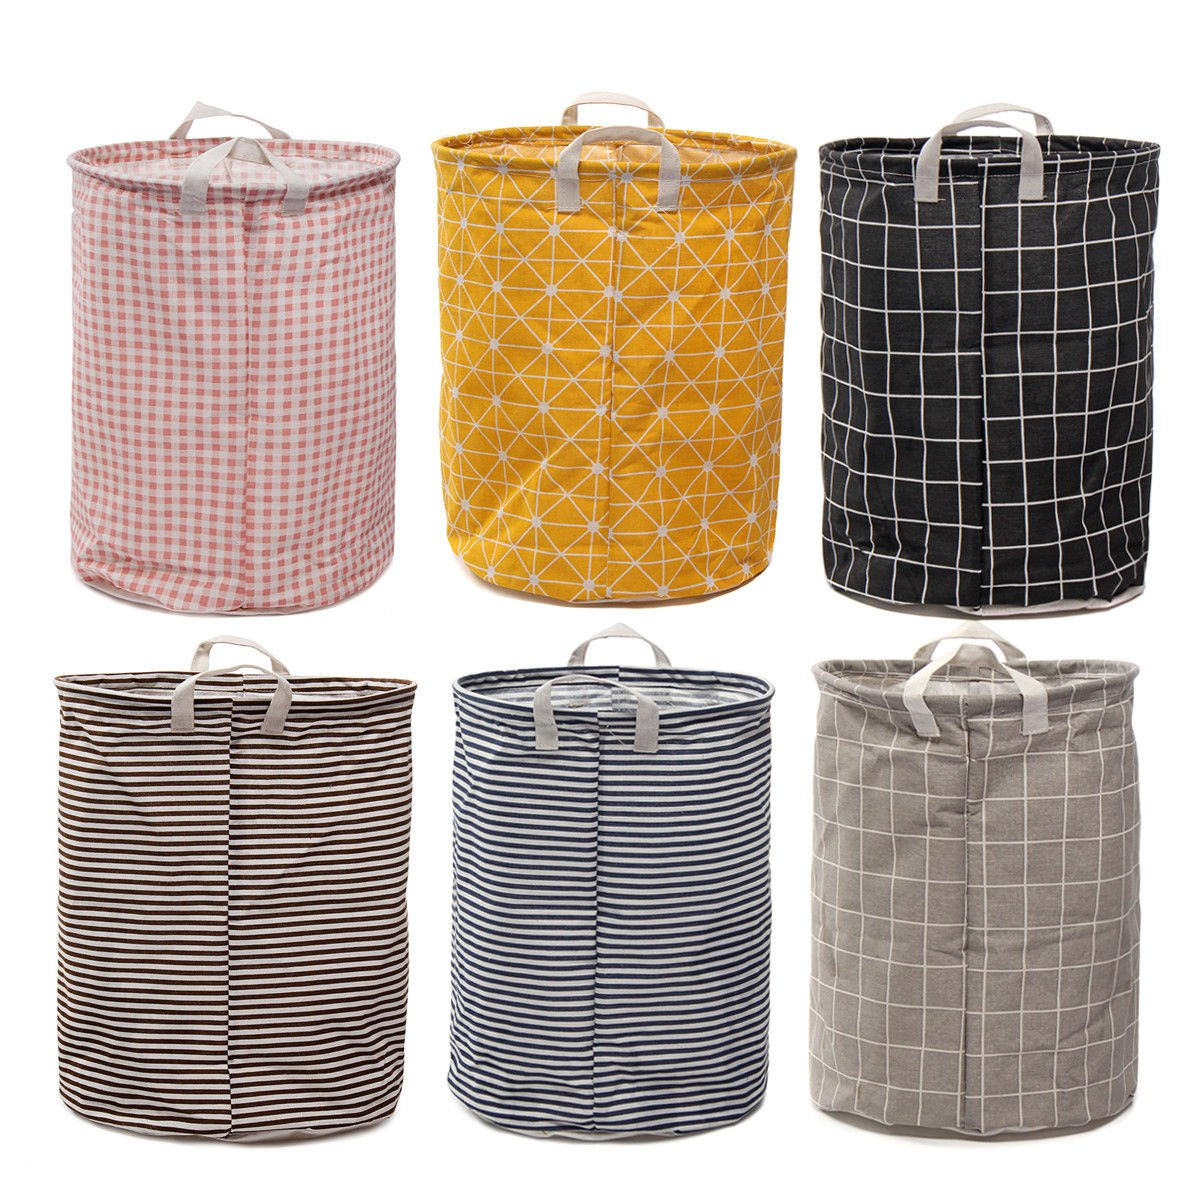 Foldable Large Storage Laundry Hamper Clothes Baskets Sorter Canvas Laundry